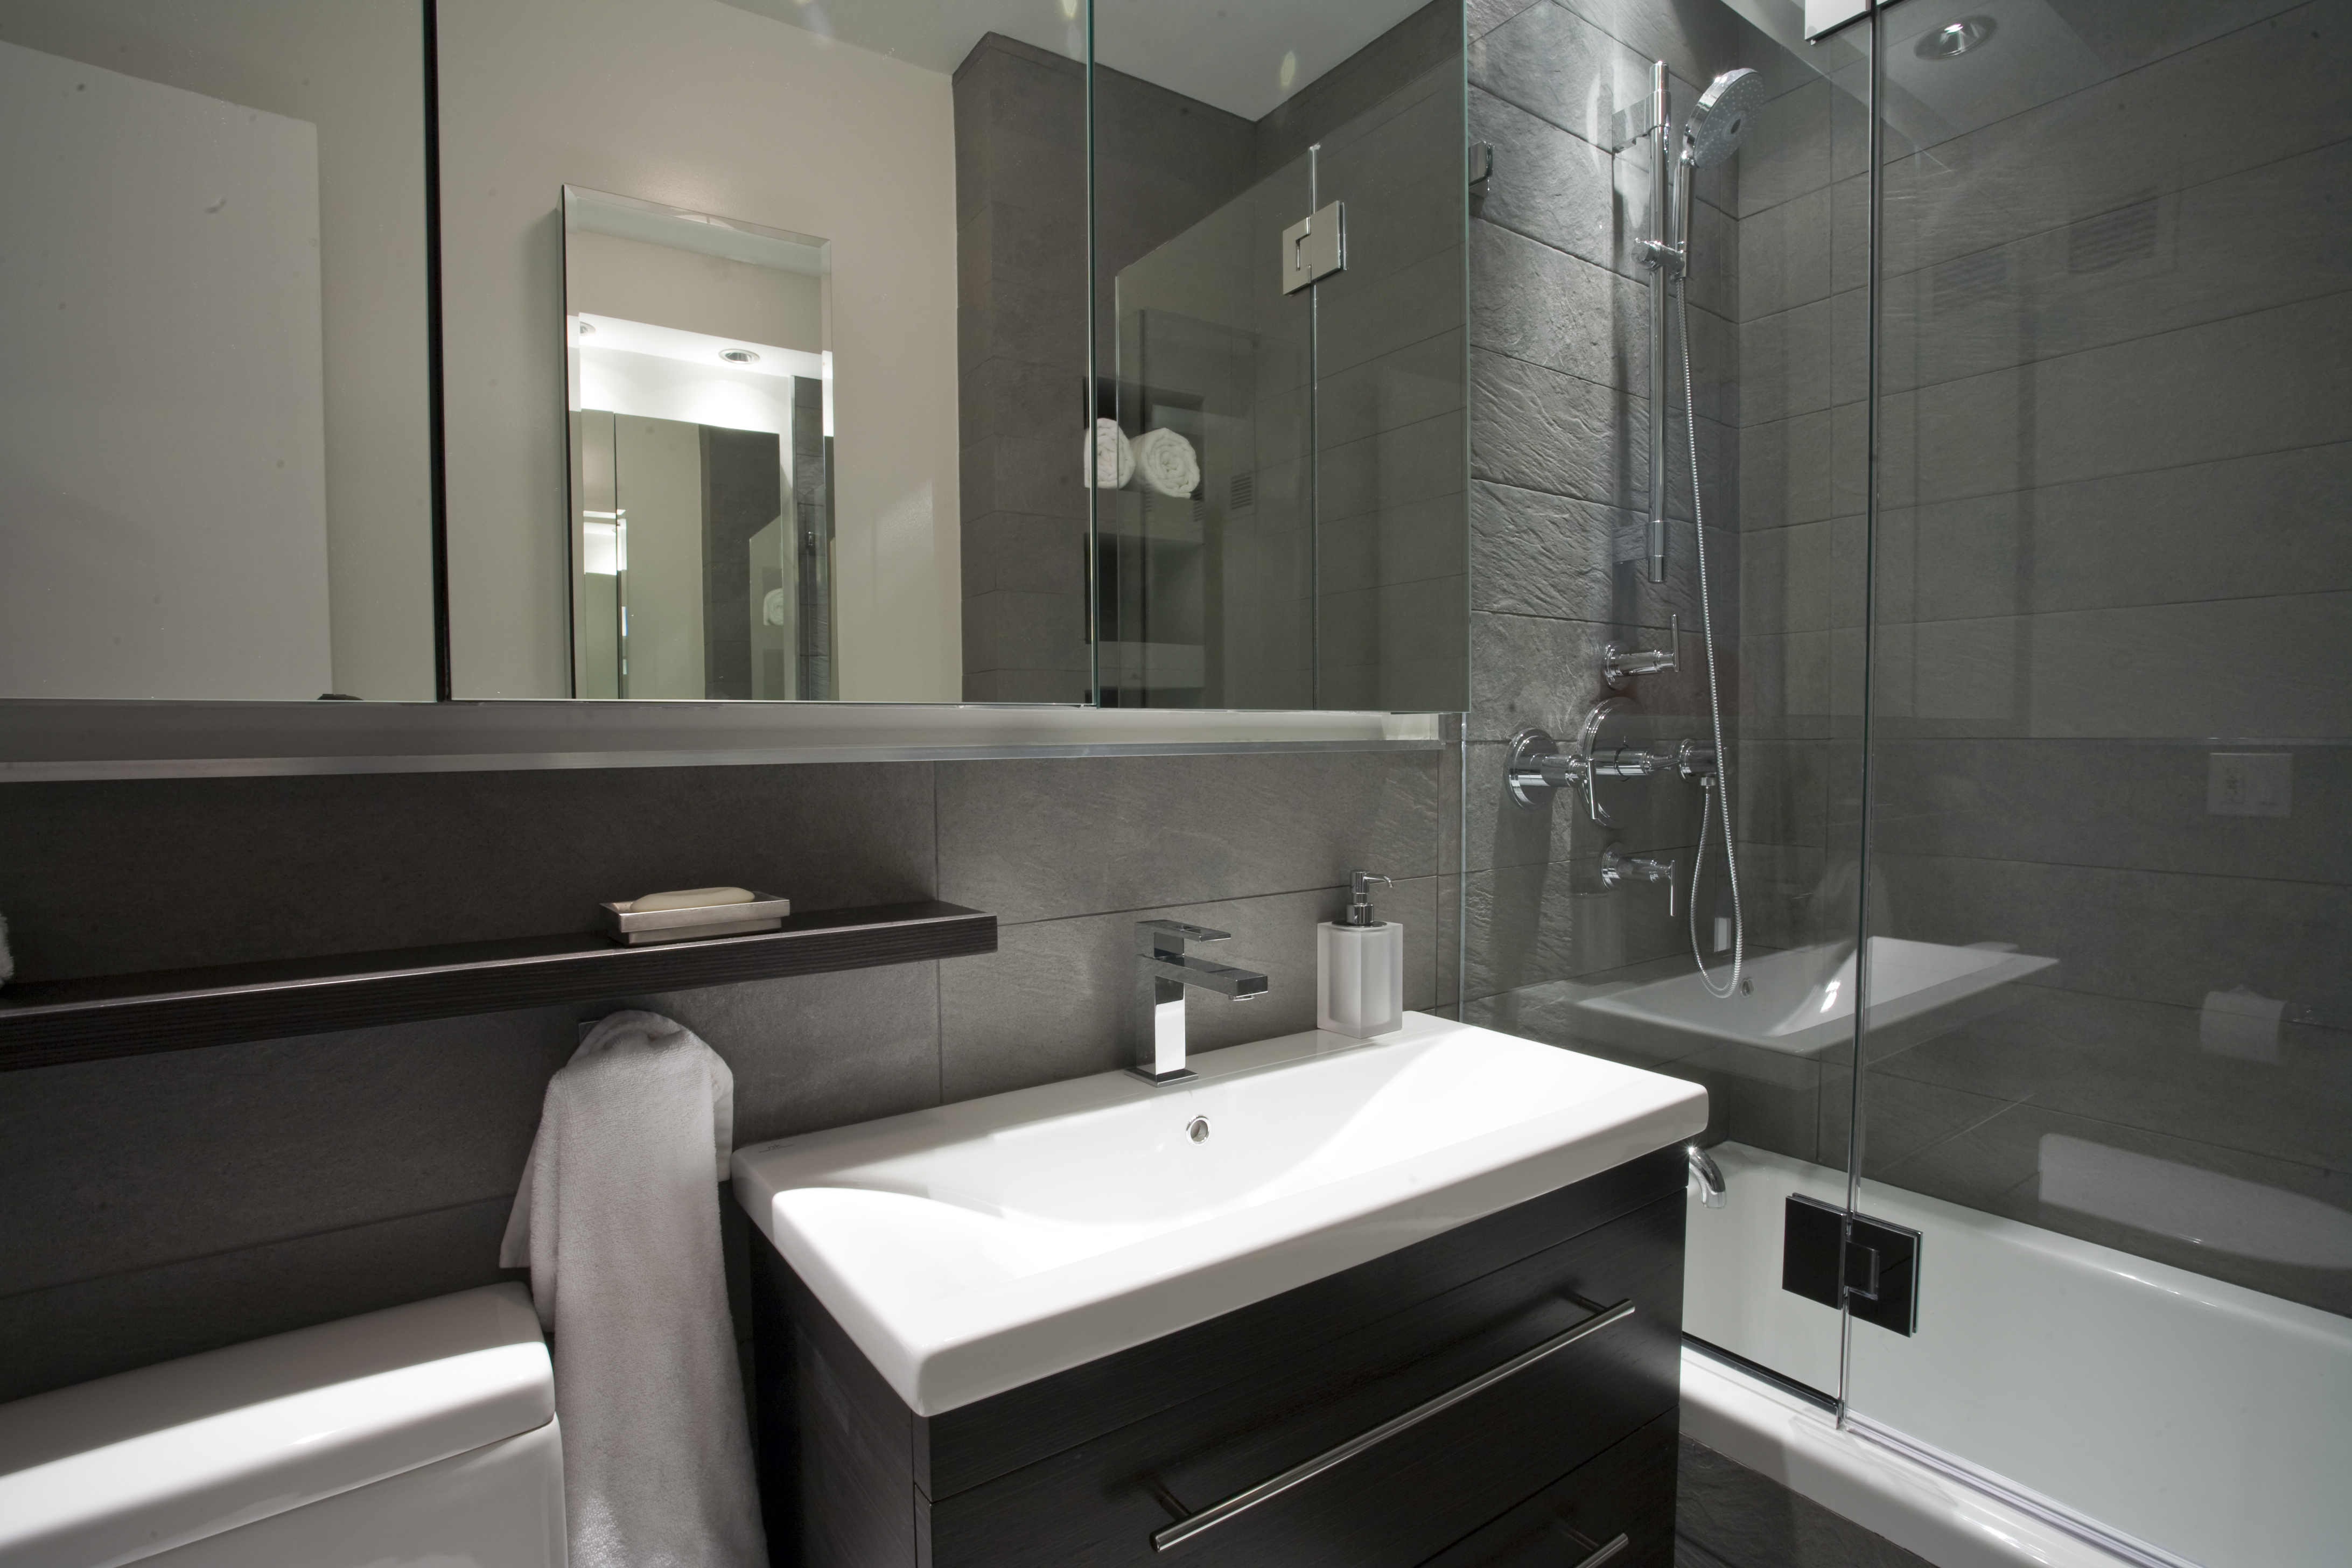 HGTV has inspirational pictures and expert tips on small bathroom decorating ideas that add style and appeal to a snug bathroom space